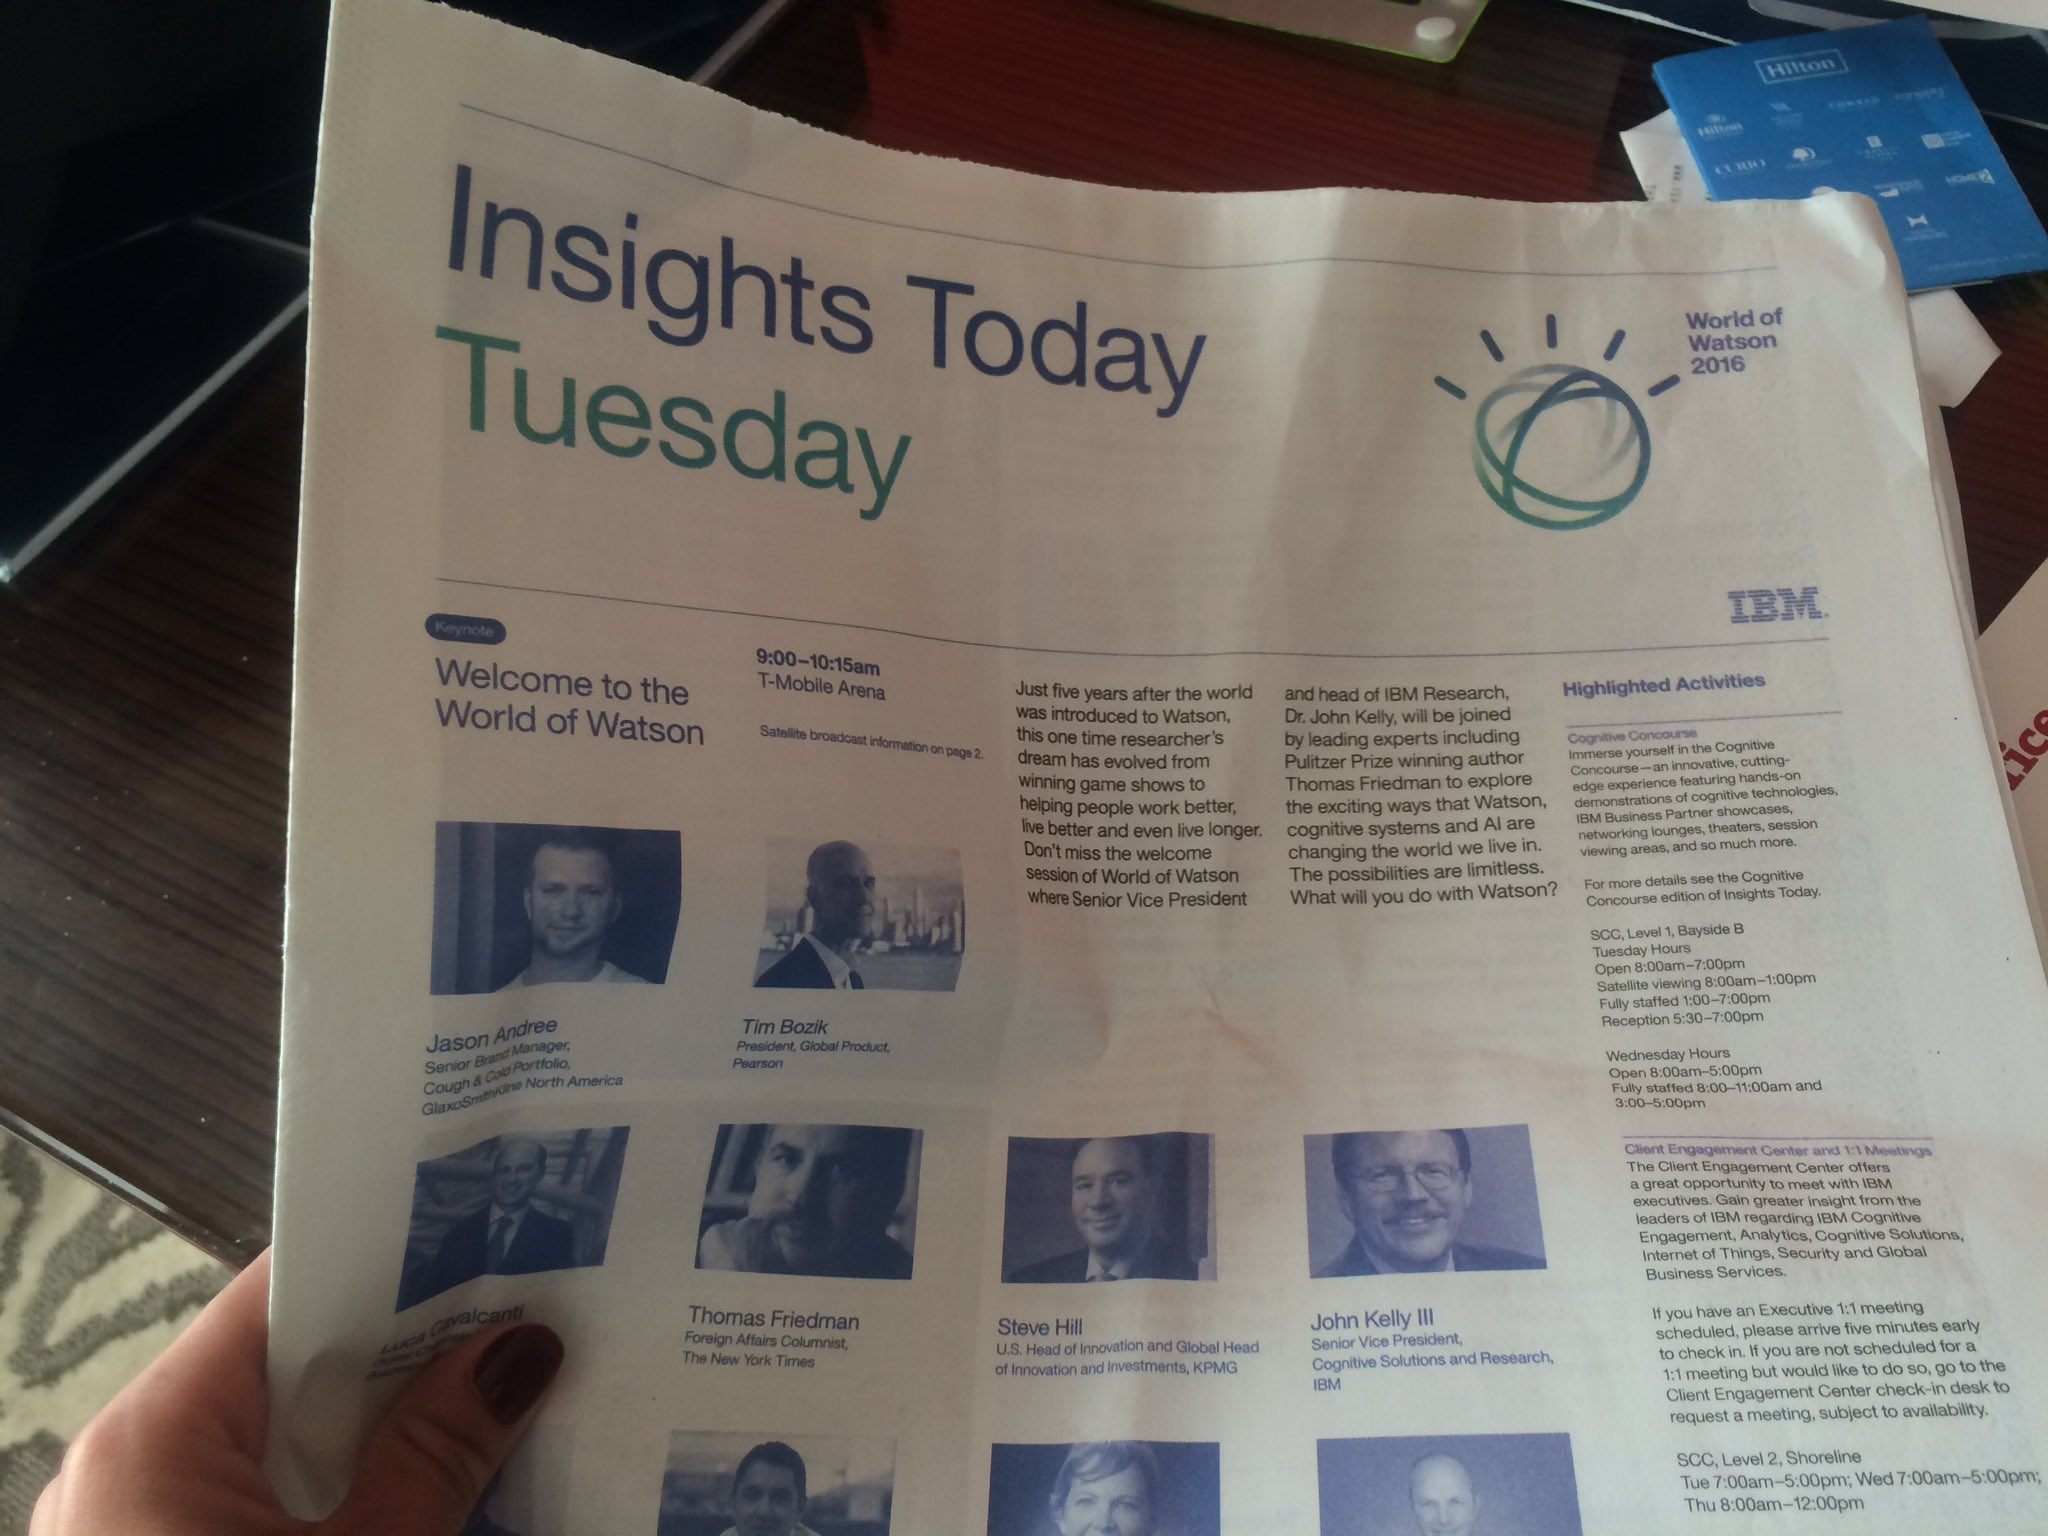 Oh, ya know, just reading the morning paper... #ibmwow @ibmwow #WatsonIoT https://t.co/nly10yBWRQ